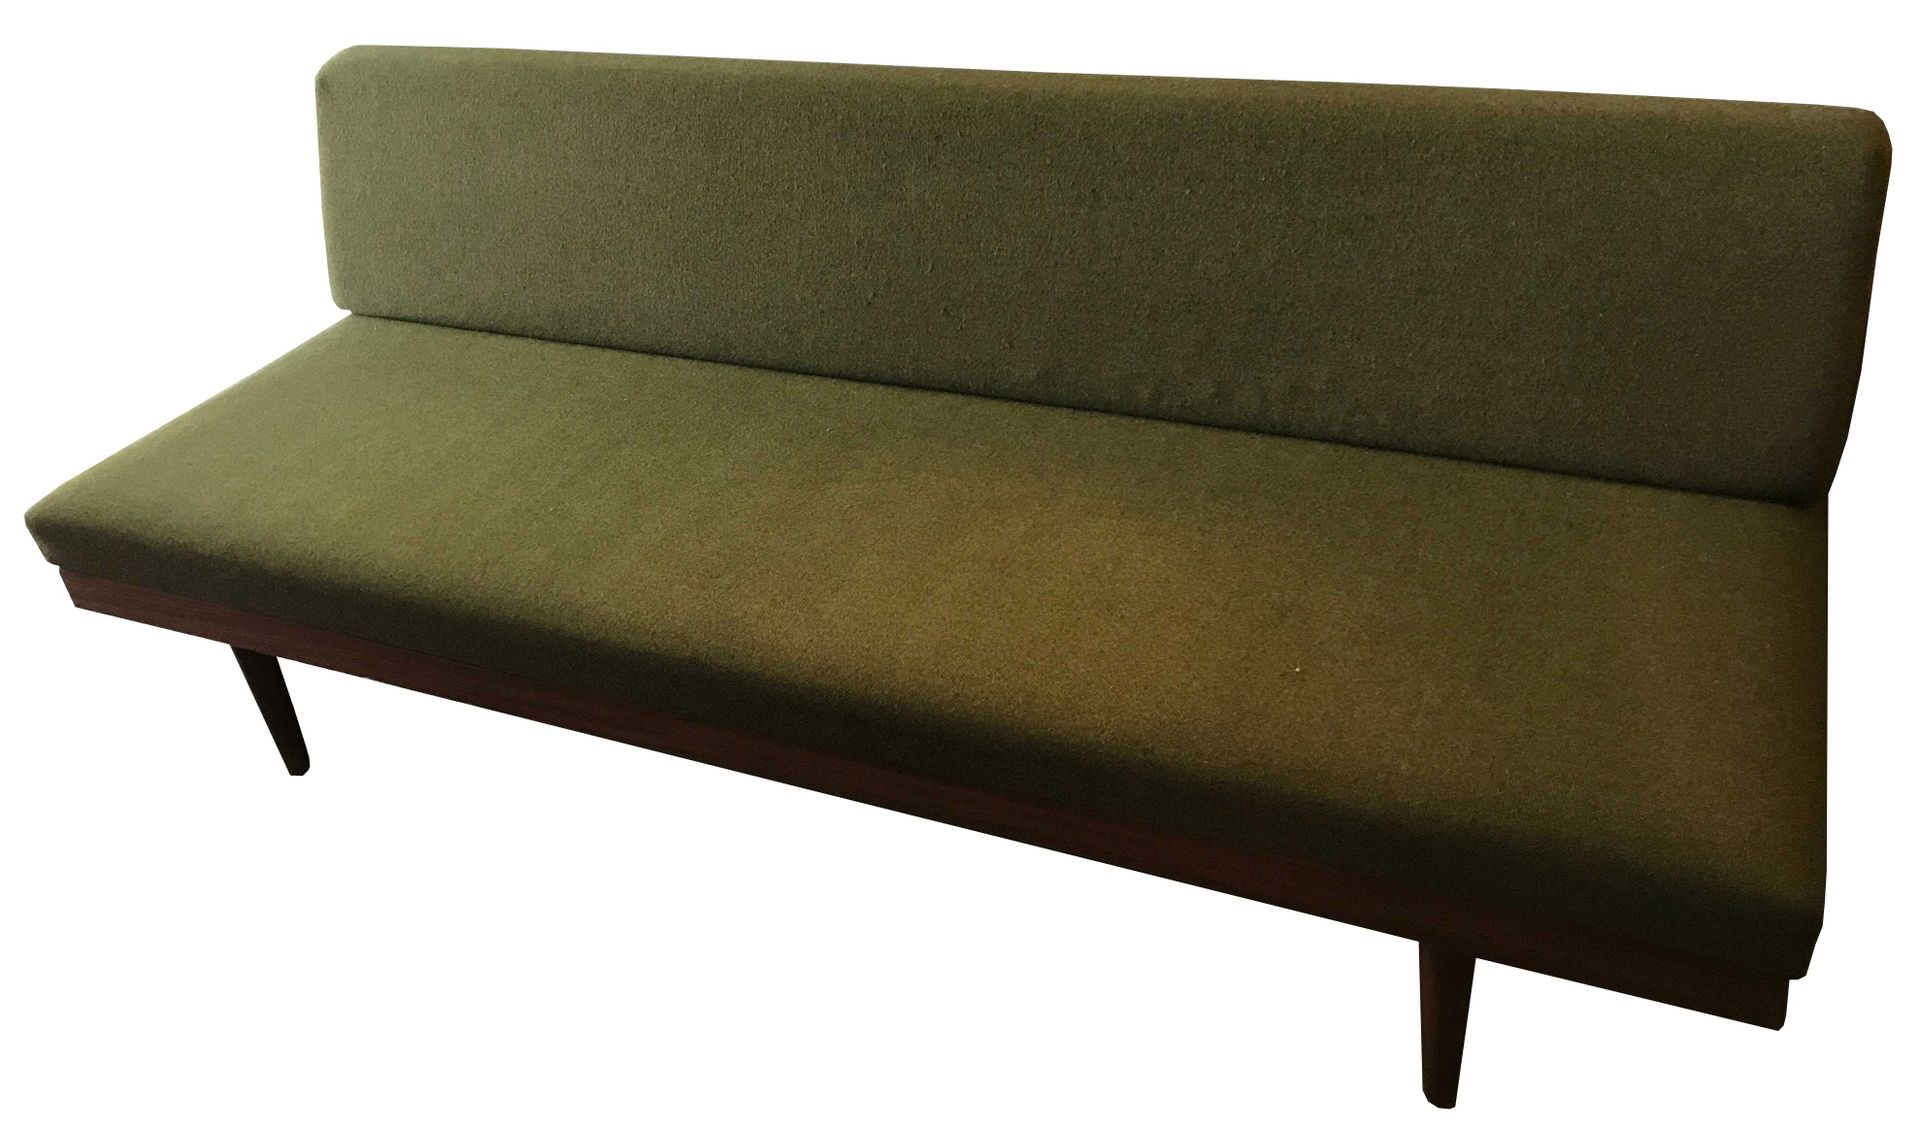 Green sofa bed 1950 for sale at pamono for Sofa bed 50s